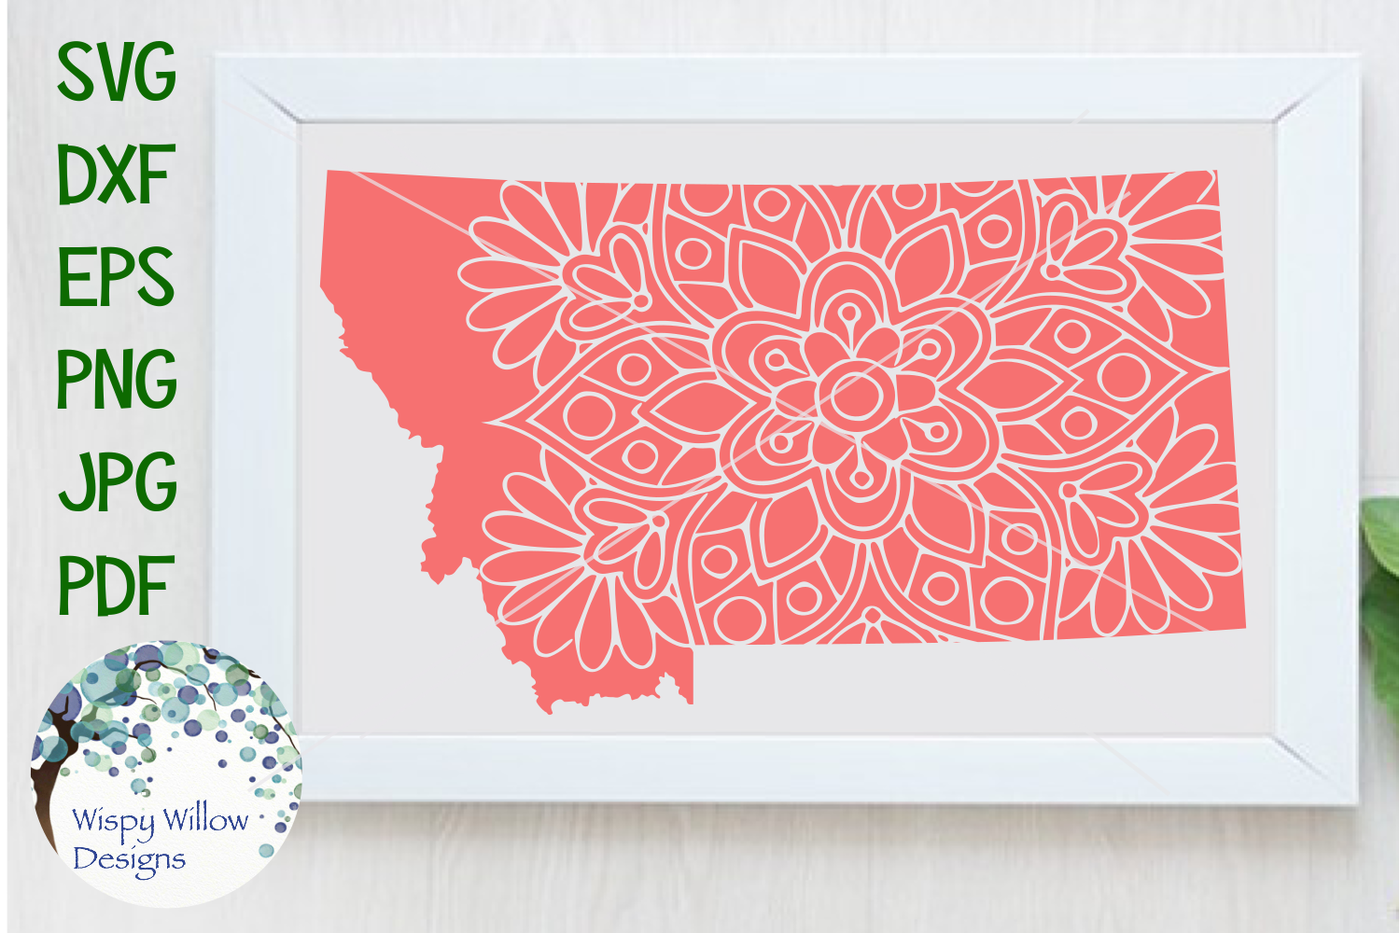 Montana Mt State Floral Svg Dxf Eps Png Jpg Pdf By Wispy Willow